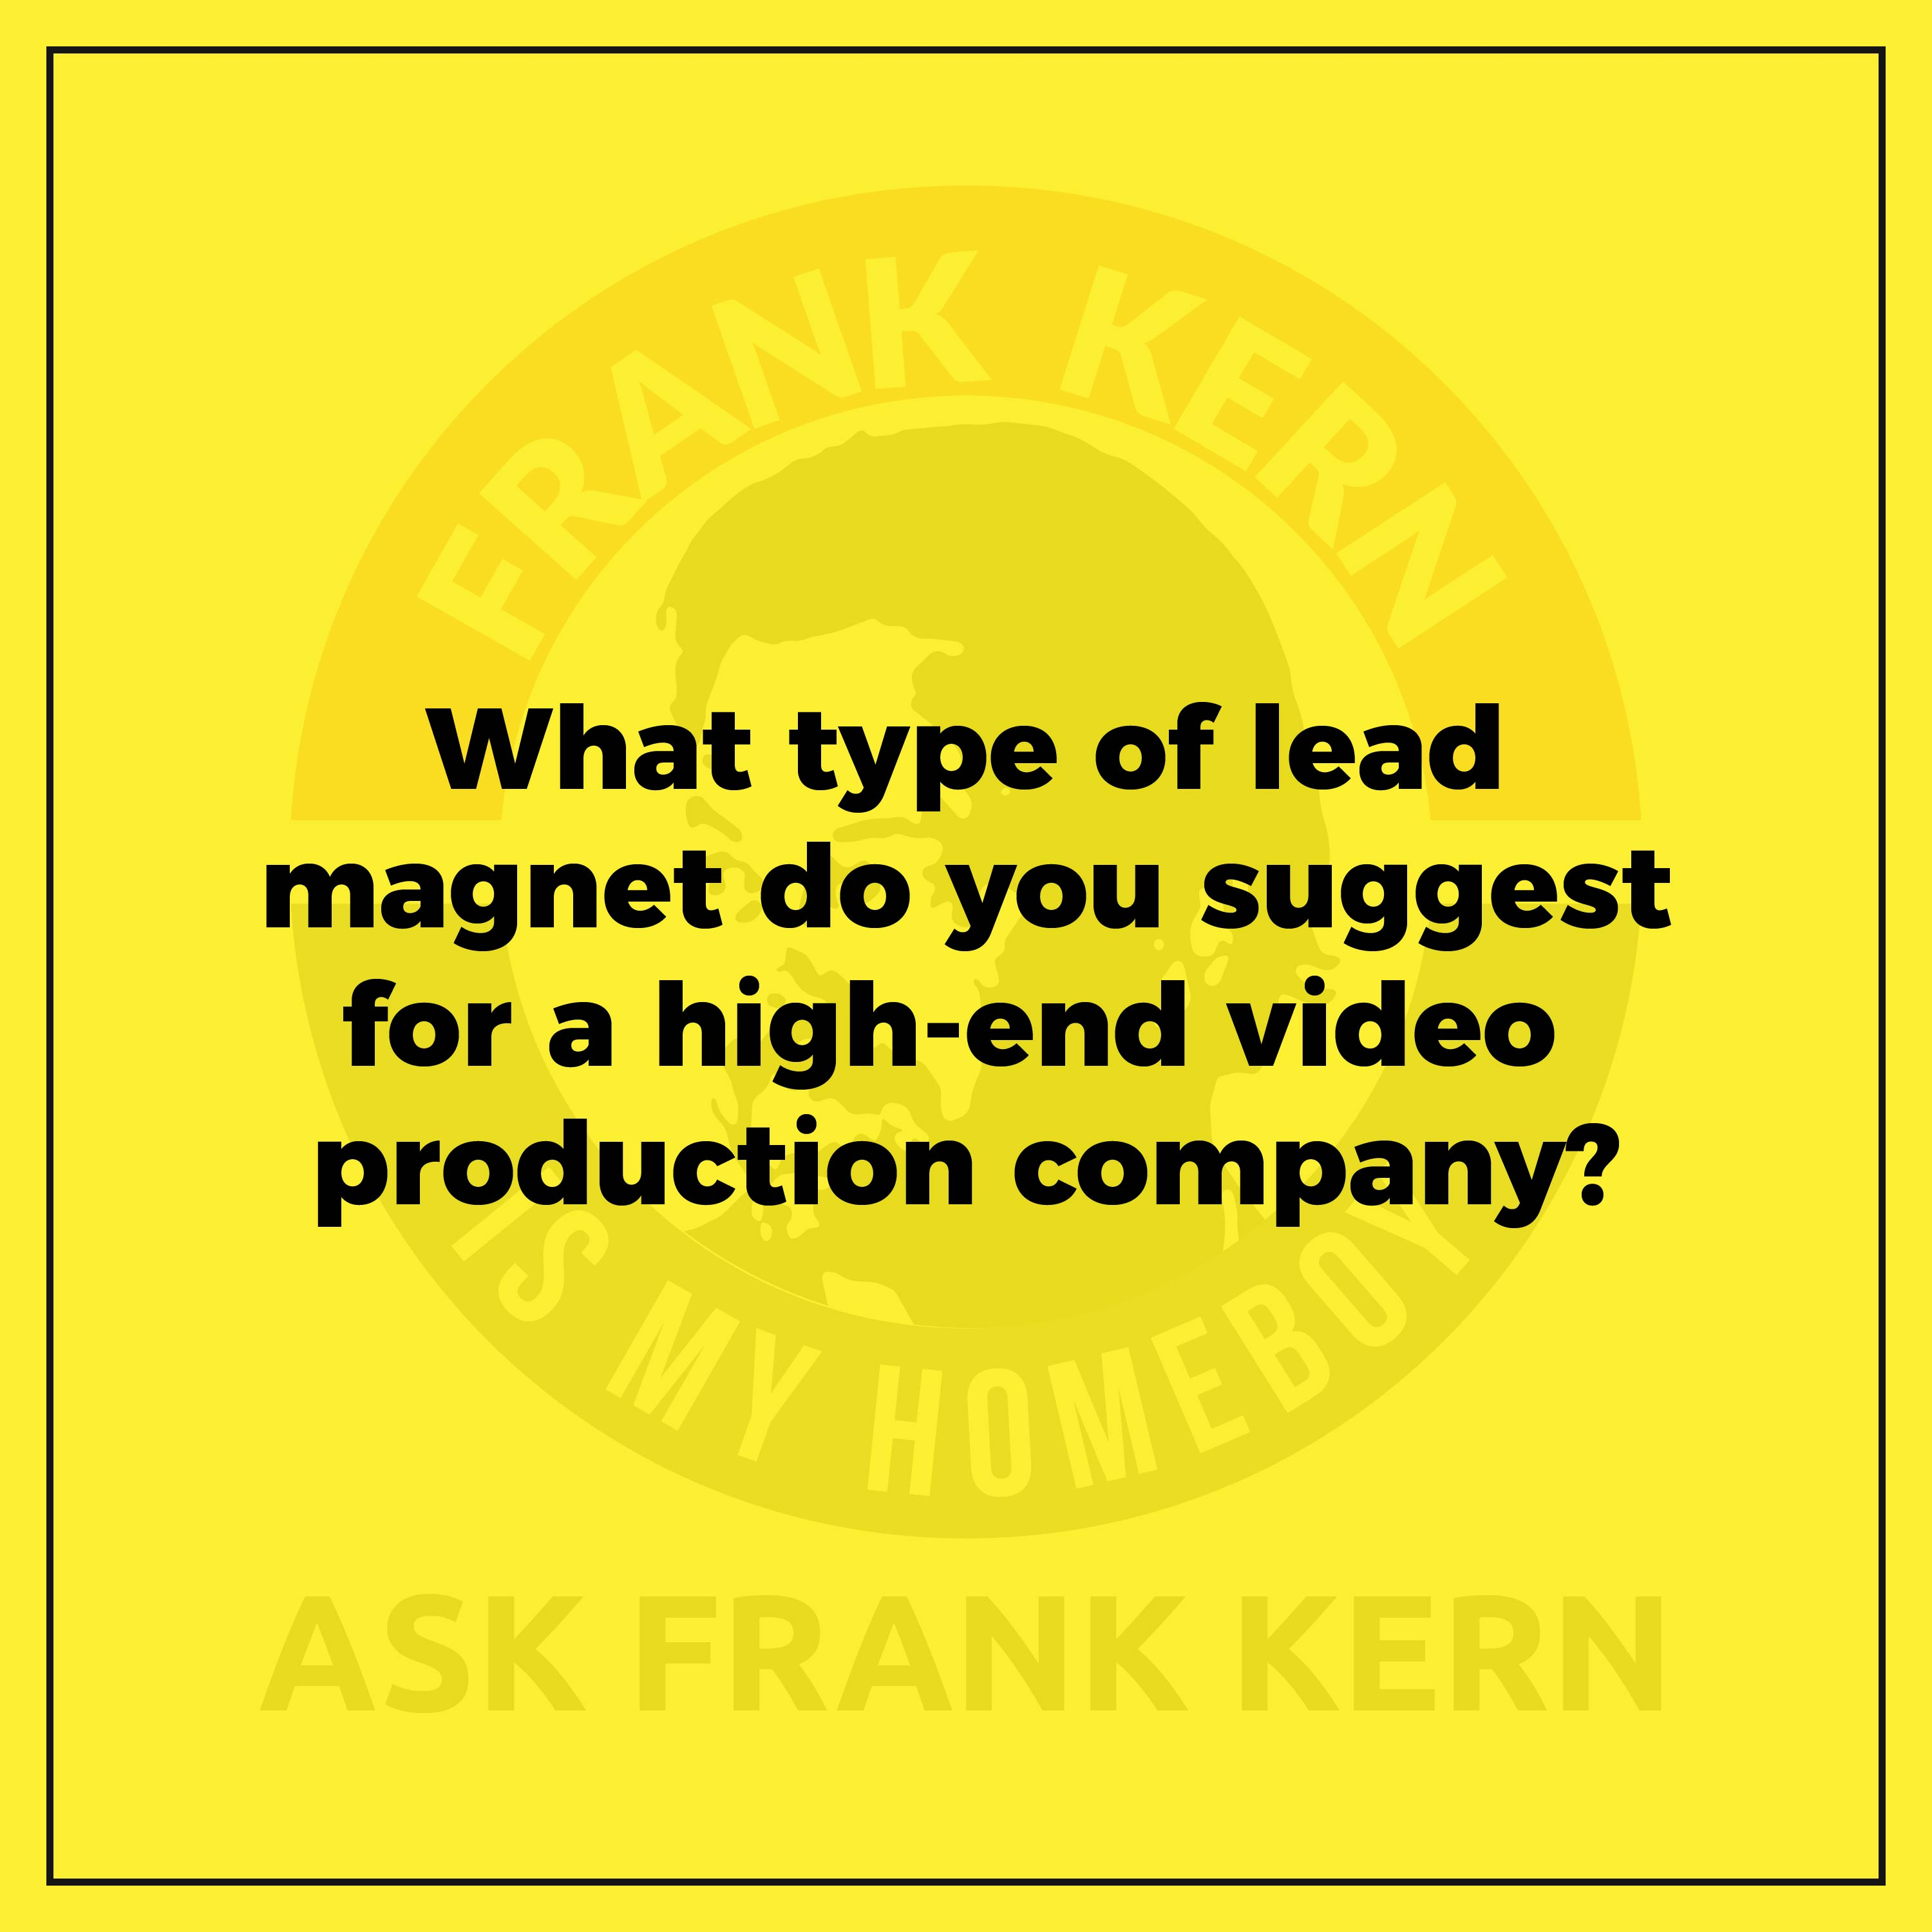 What type of lead magnet do you suggest for a high-end video production company?